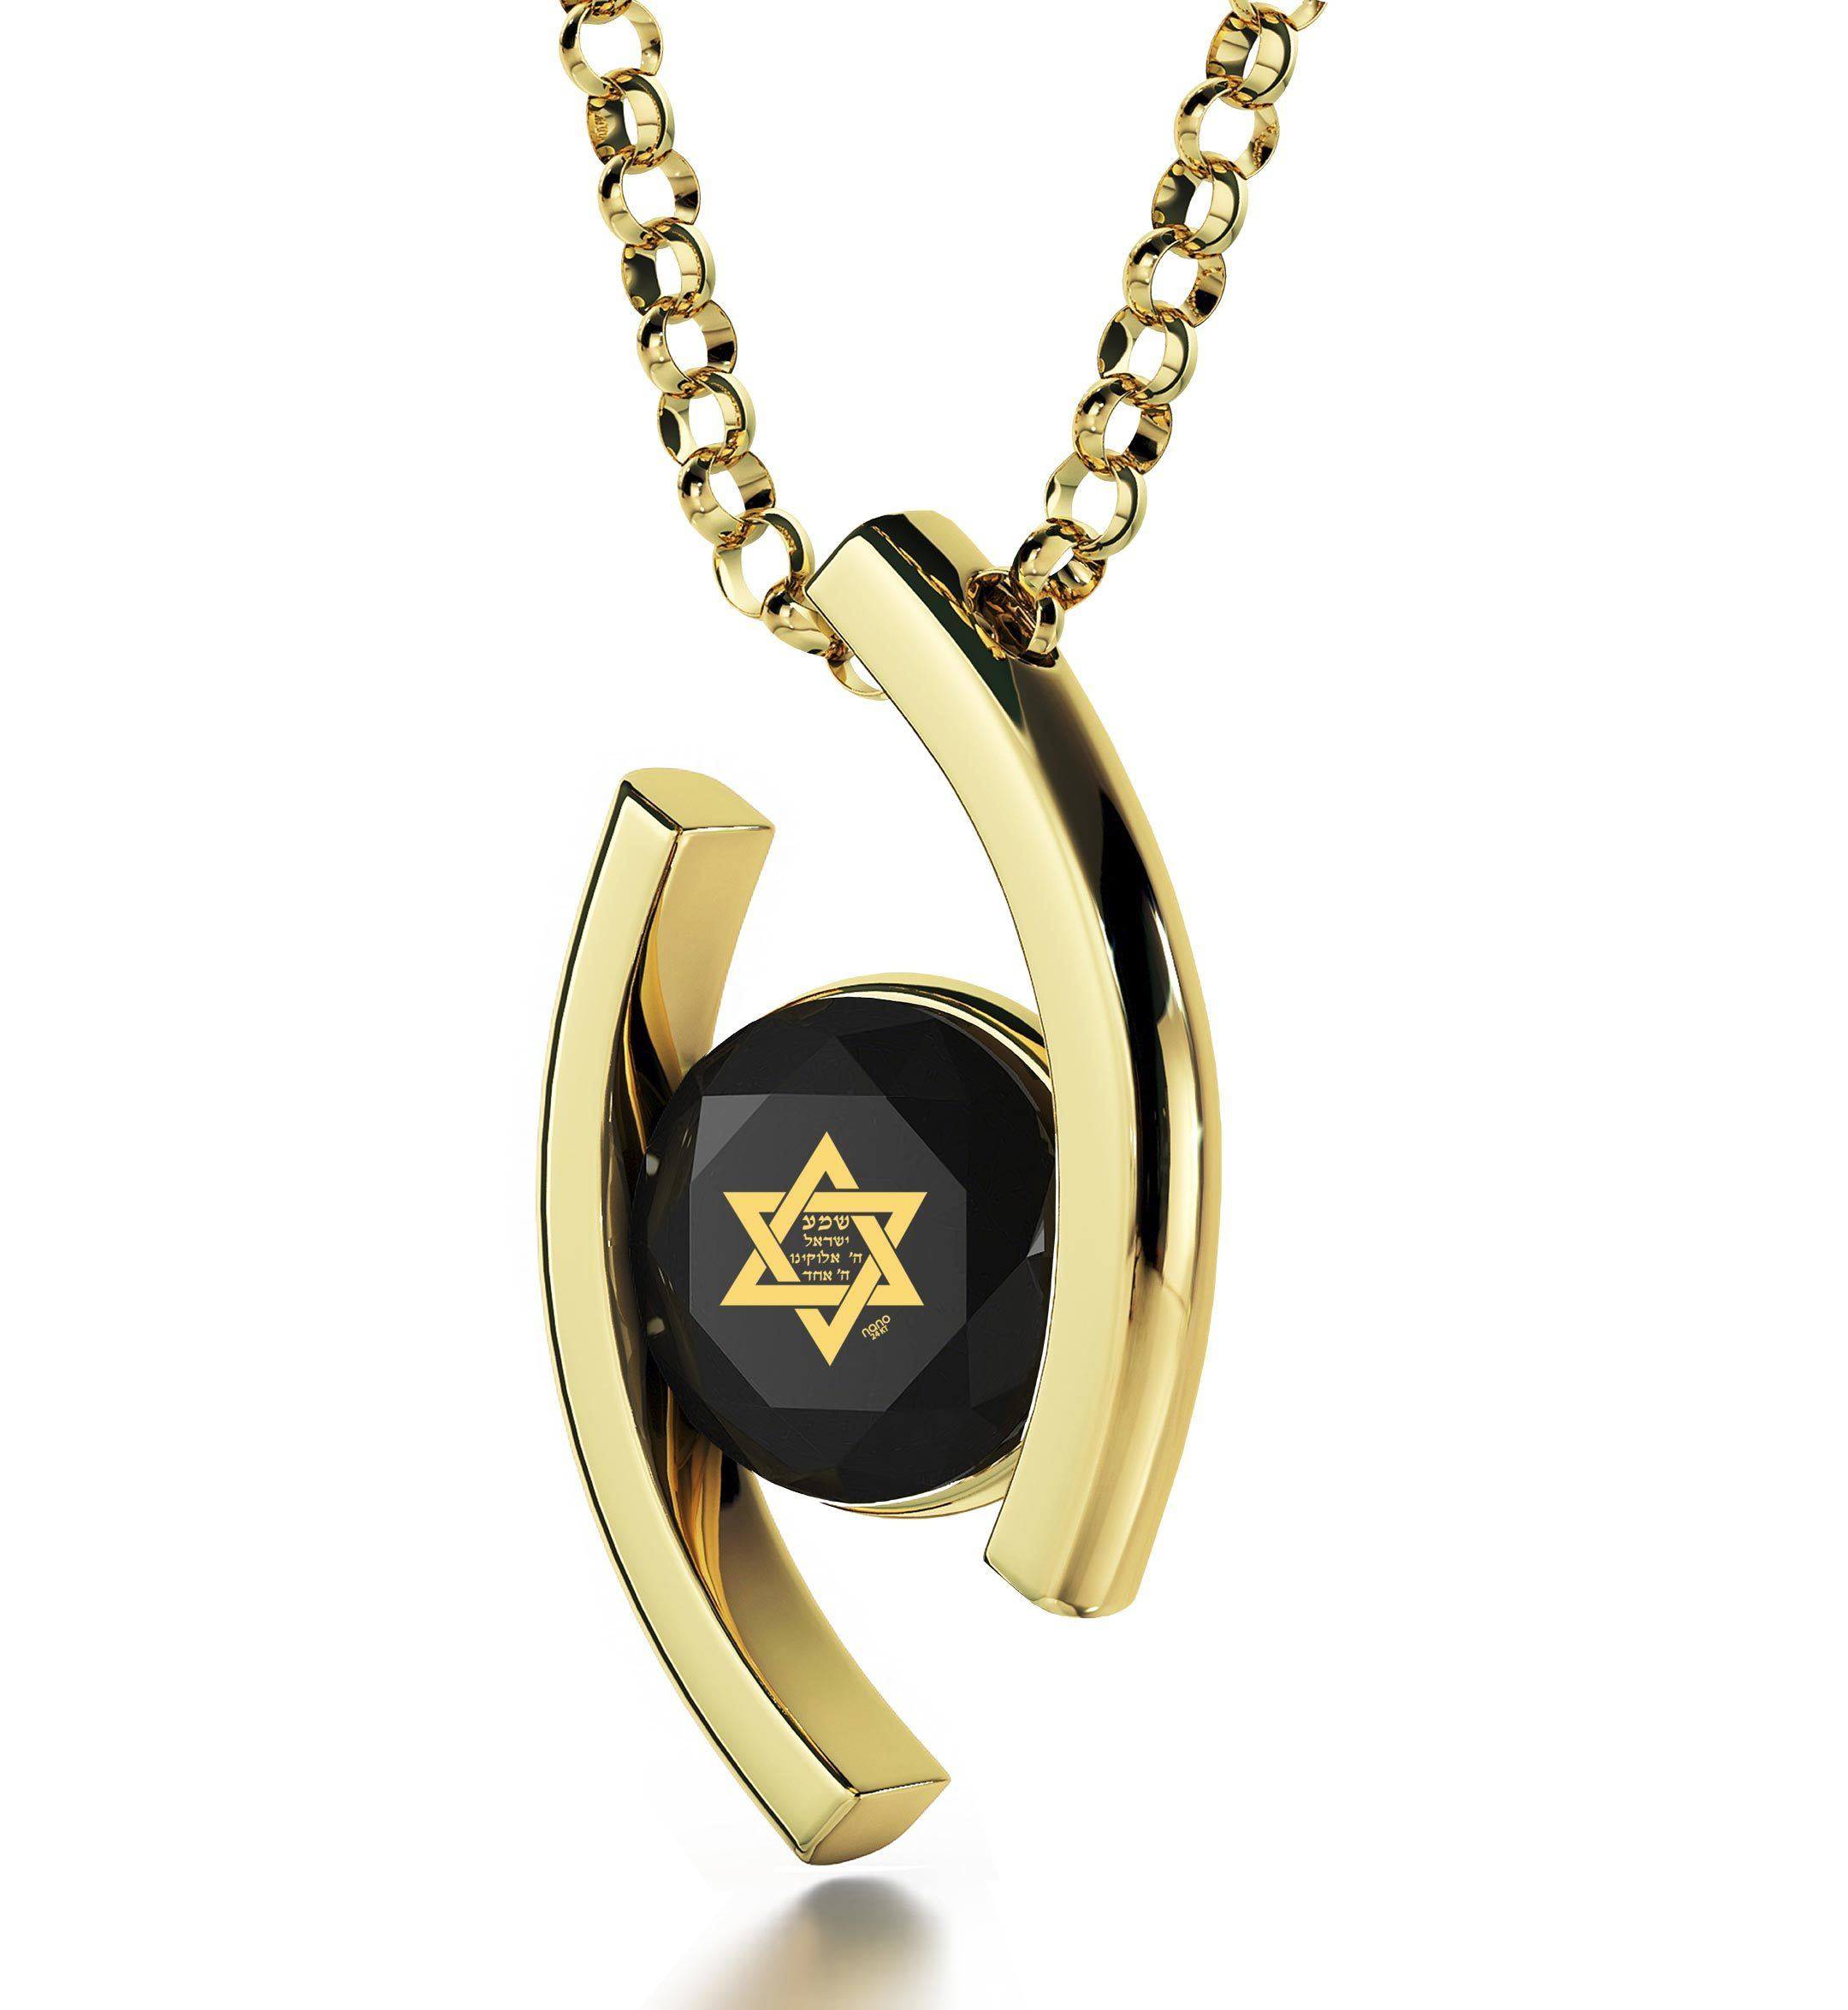 """Shema Yisrael"" Engraved in 24k, Jewish Necklace with Black Stone Pendant, Israeli Jewelry Designer"